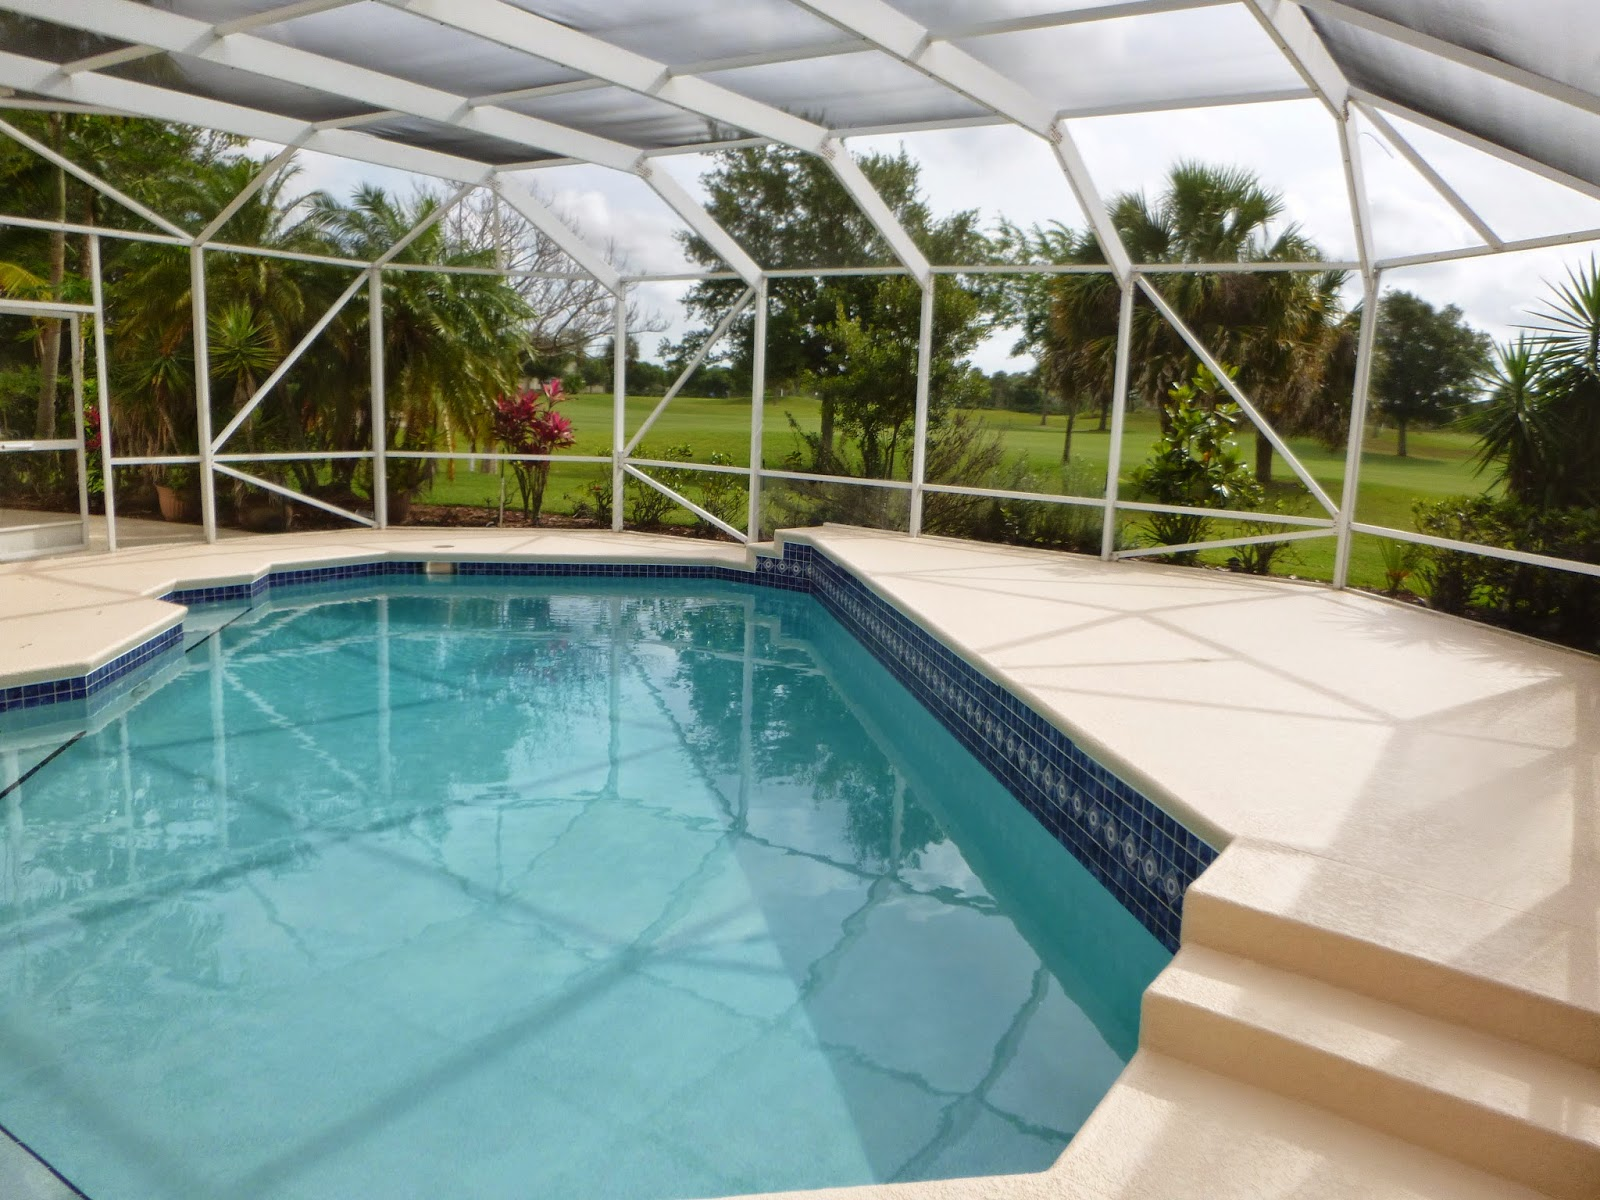 Painting artists corp painting company port st lucie fl for Florida pool and deck